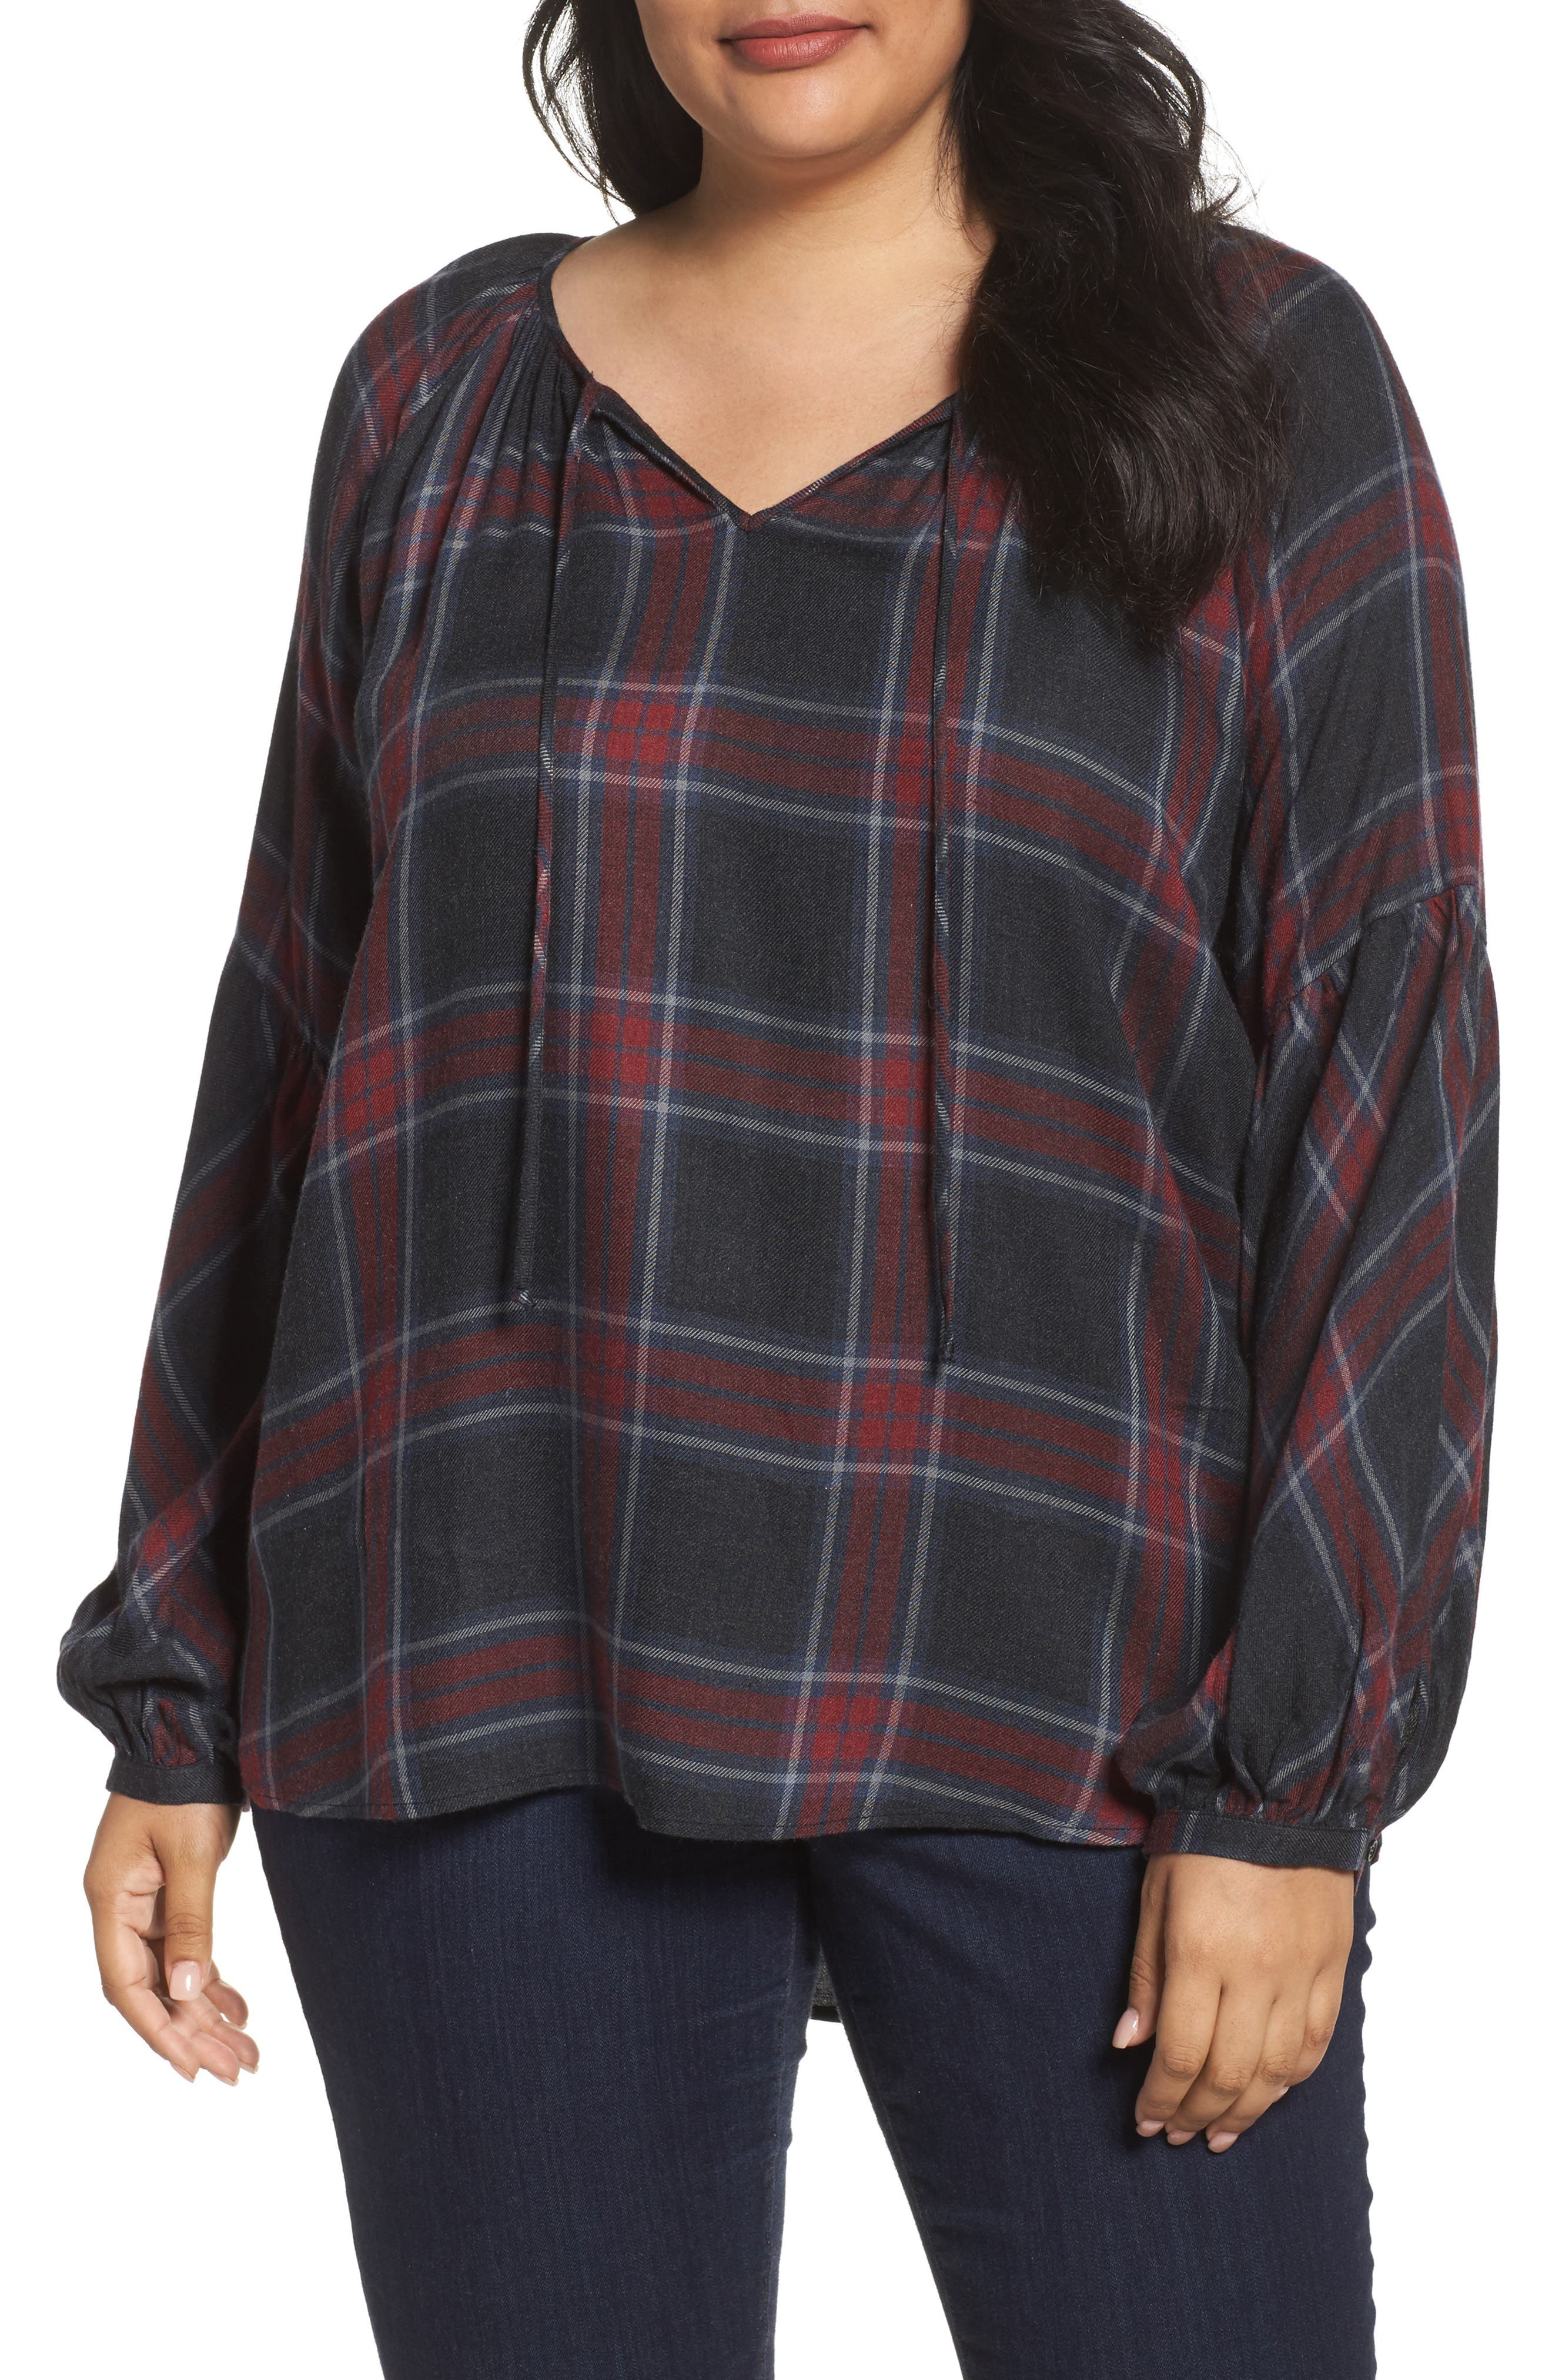 Alternate Image 1 Selected - Two by Vince Camuto Serenade Tie Neck Plaid Top (Plus Size)